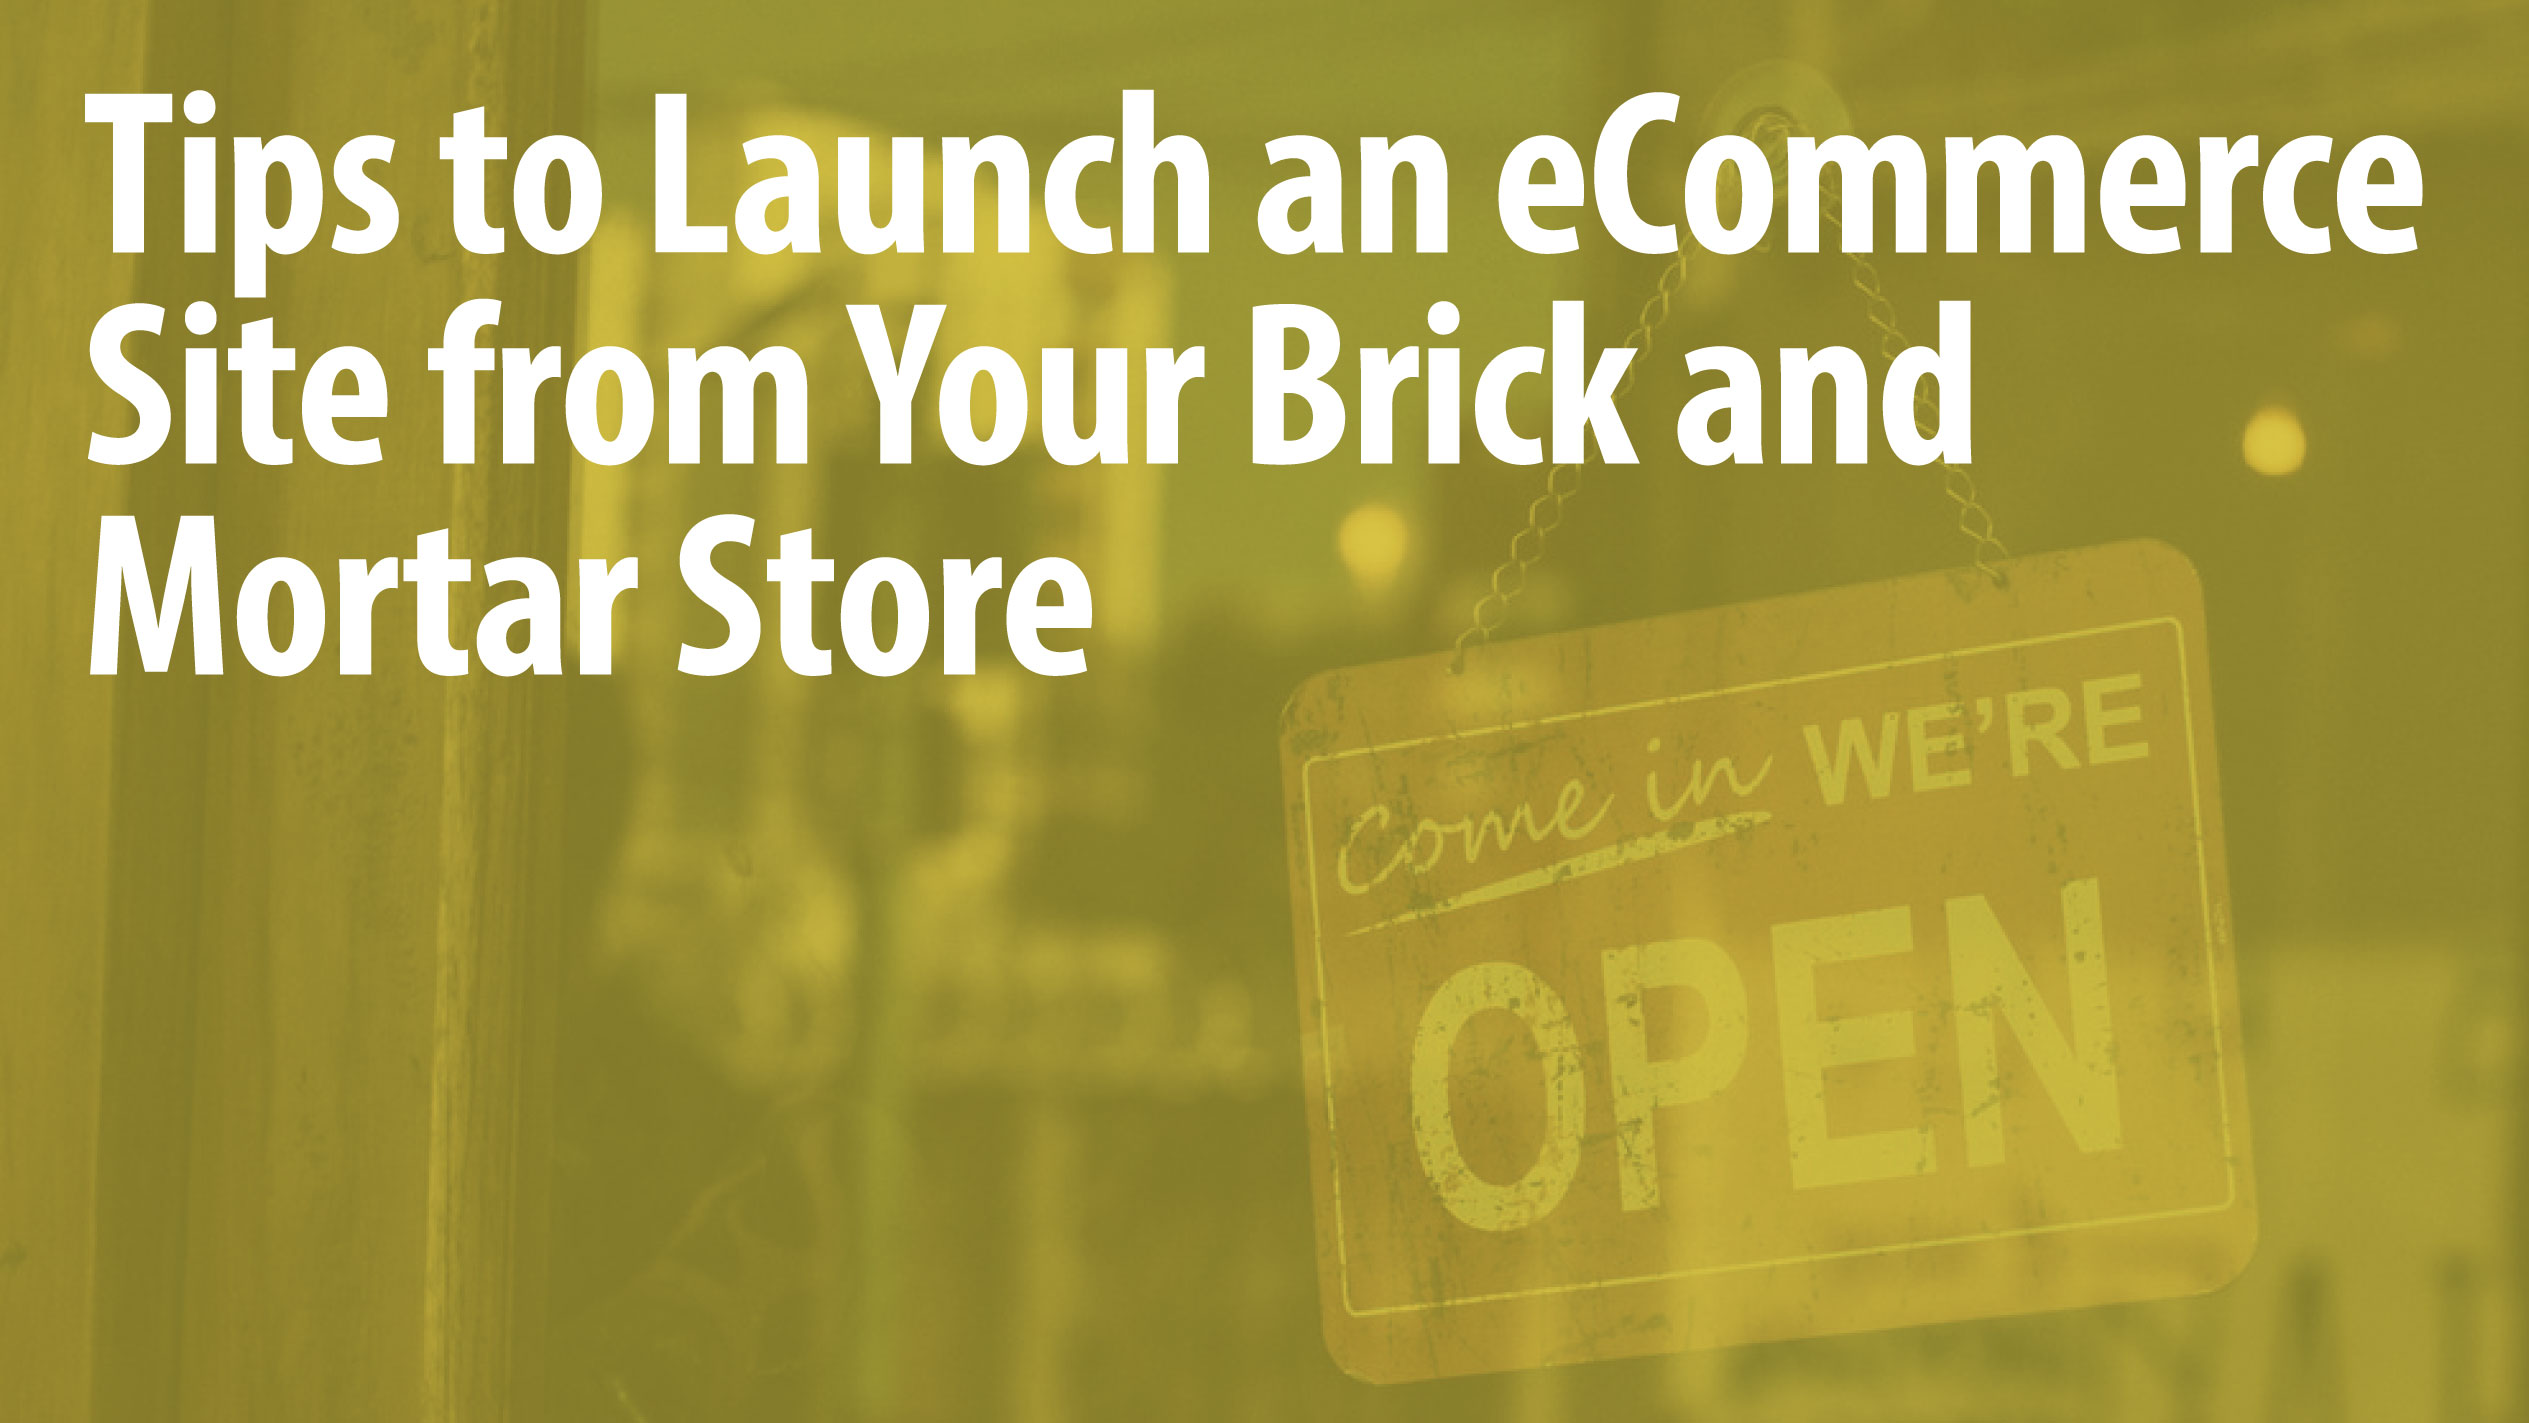 Tips to Launch an eCommerce Site from Your Brick and Mortar Store